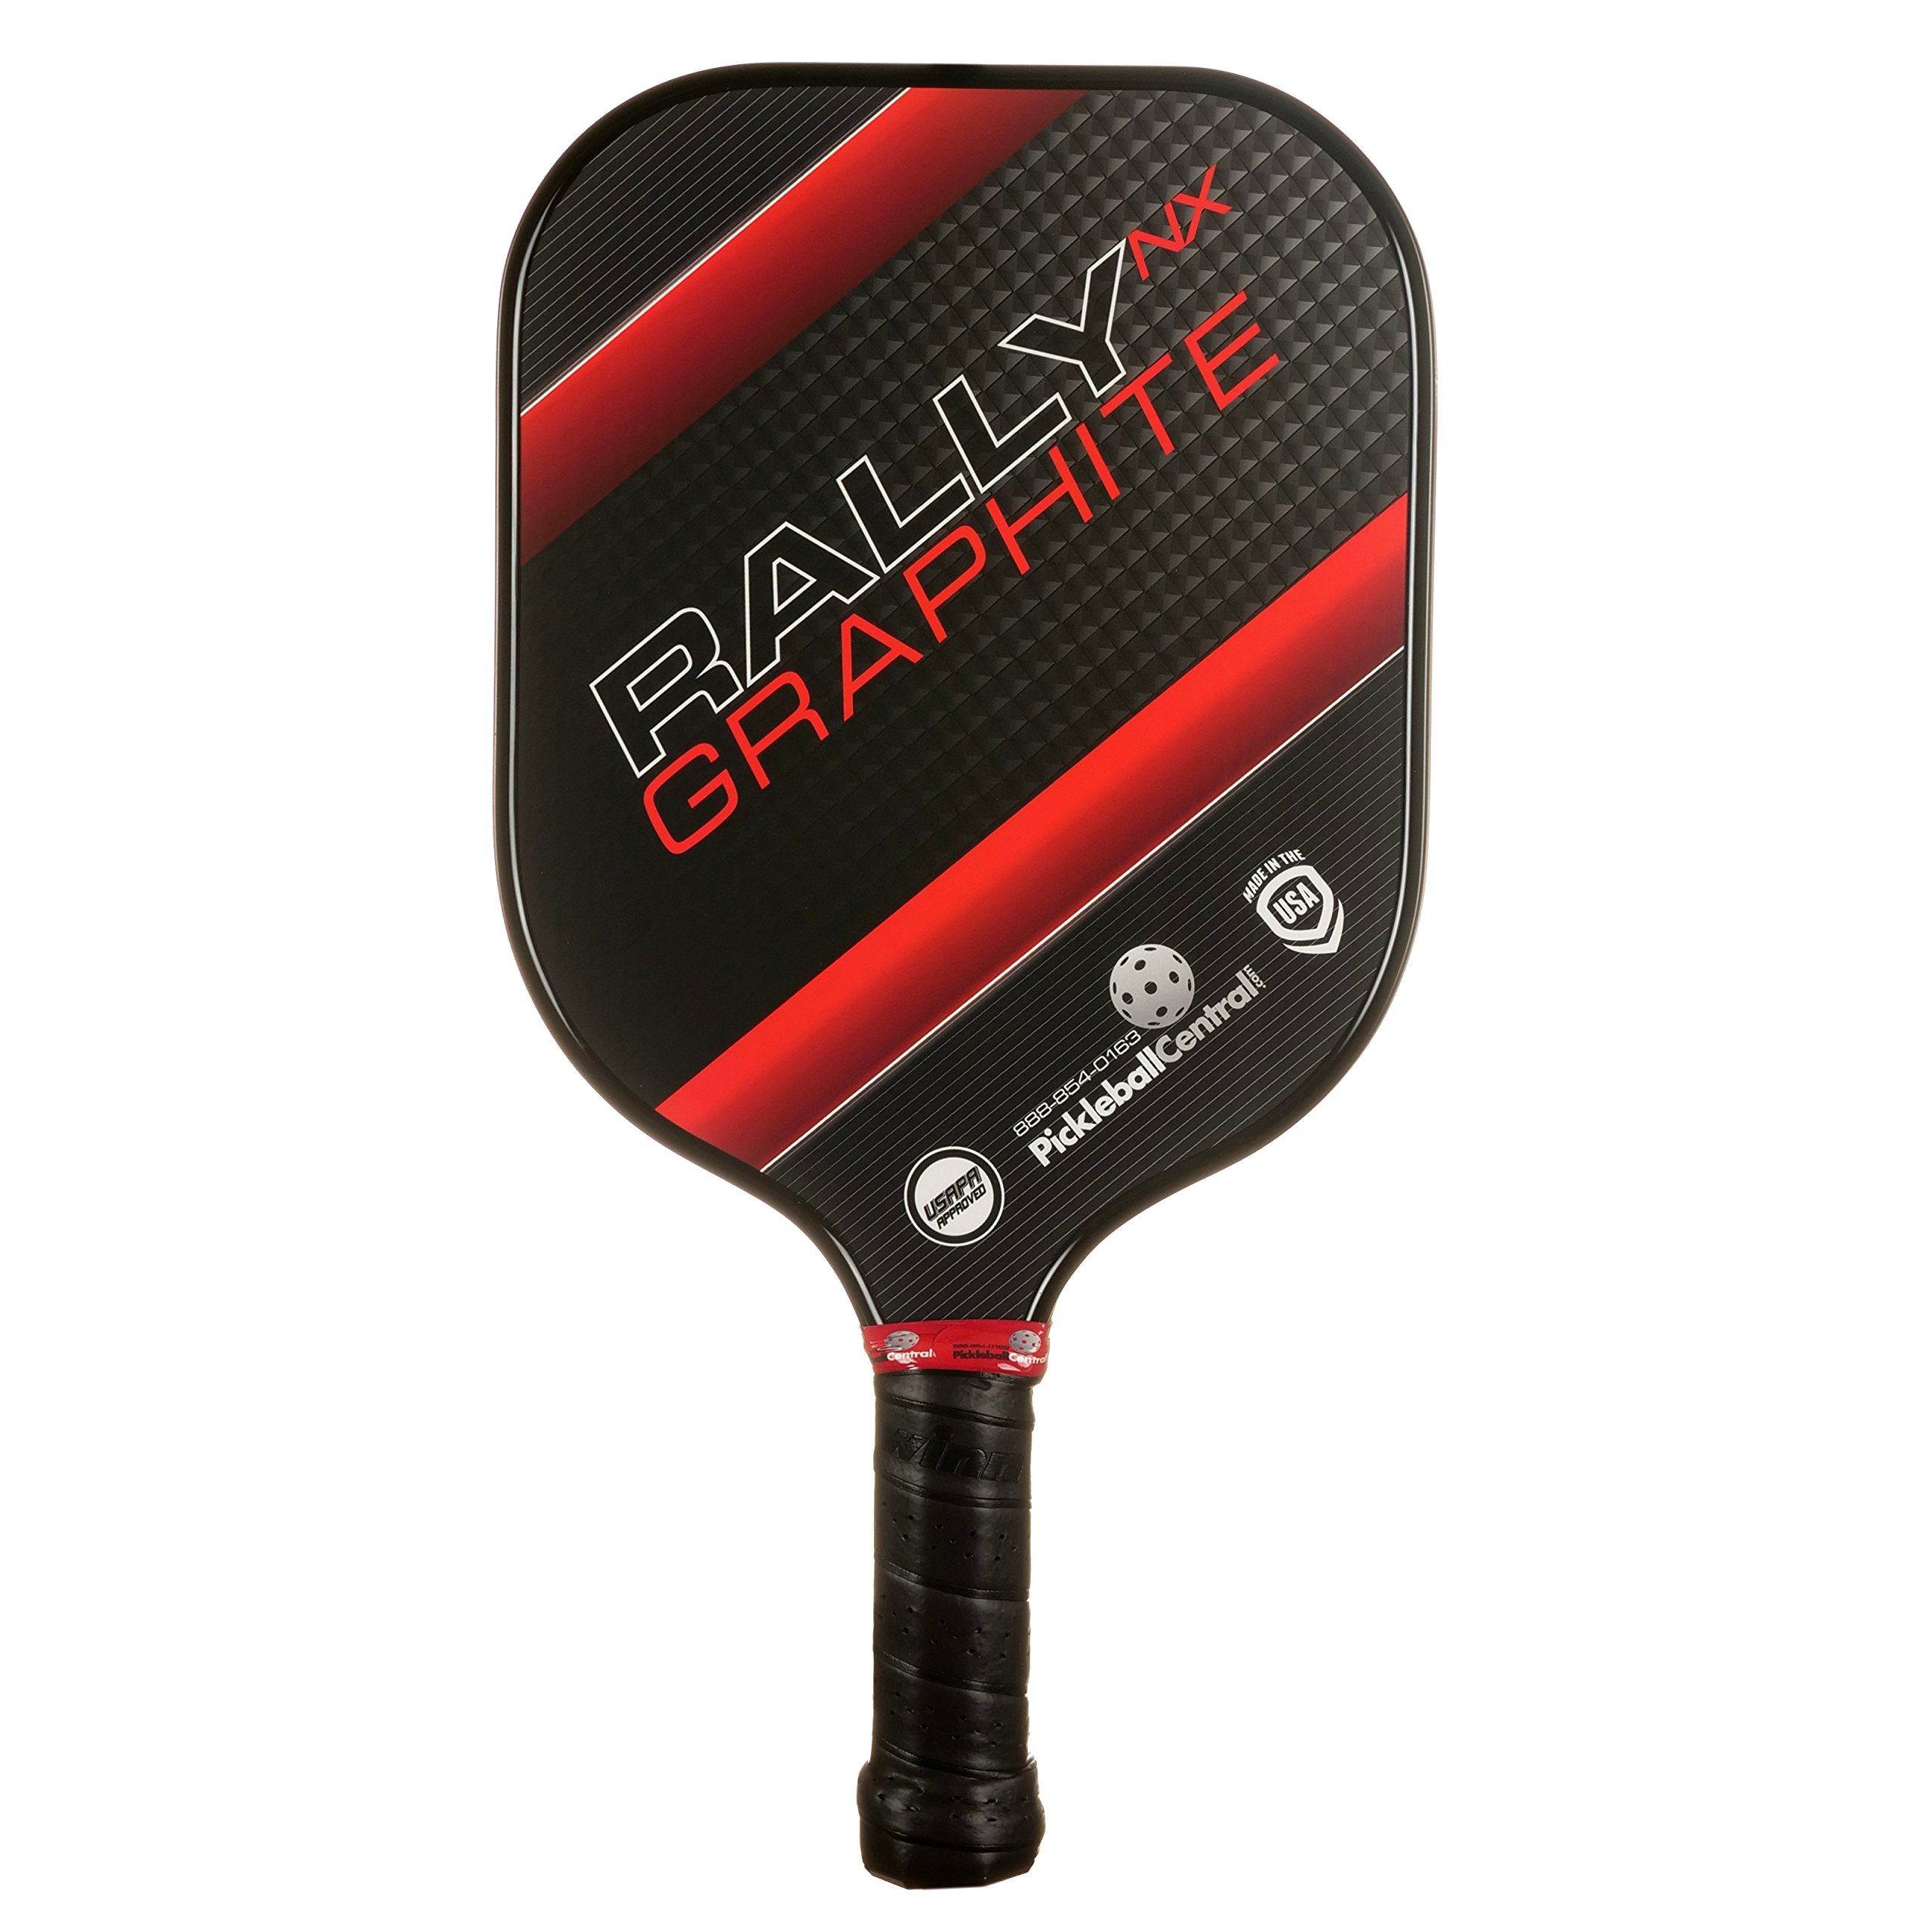 Pickleball Paddle - Rally NX Graphite Pickleball Paddle   Composite Honeycomb Core, Graphite Carbon Fiber Face   Lightweight   Pickleball Sets, Pickleballs, Paddle Covers Available   USAPA Approved by PickleballCentral